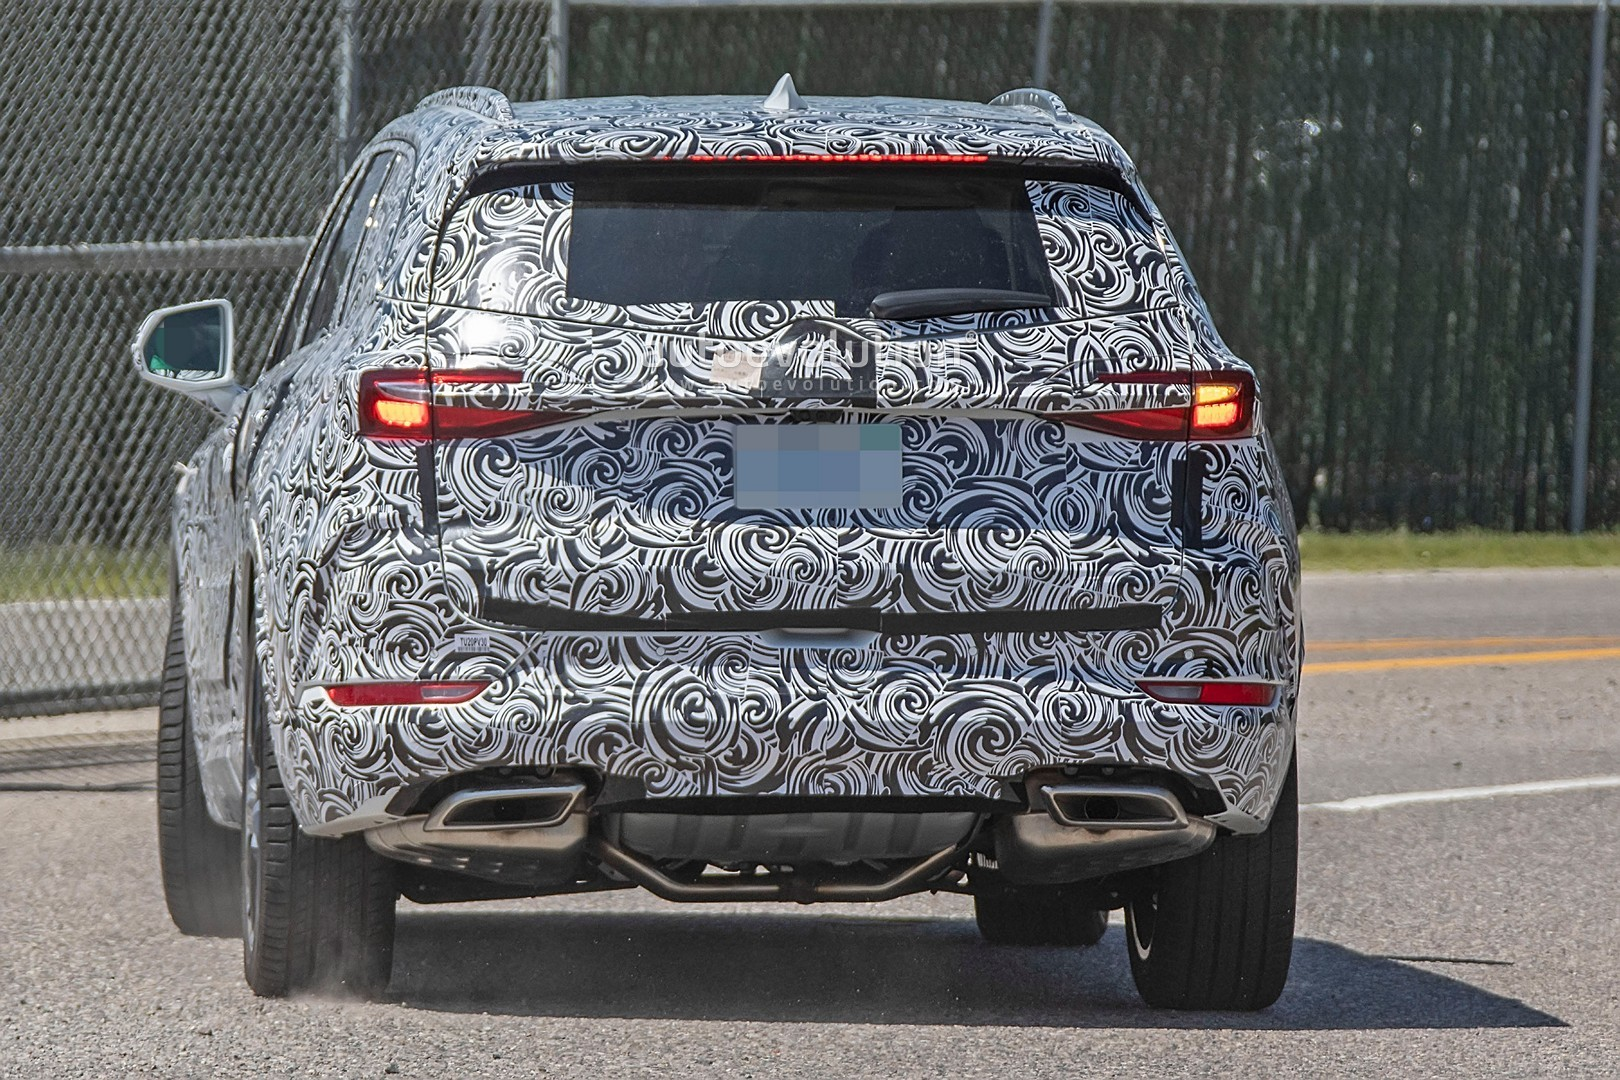 2020 - [Buick] Enspire Buick-spotted-testing-baby-enclave-spied-looks-like-enspire_6